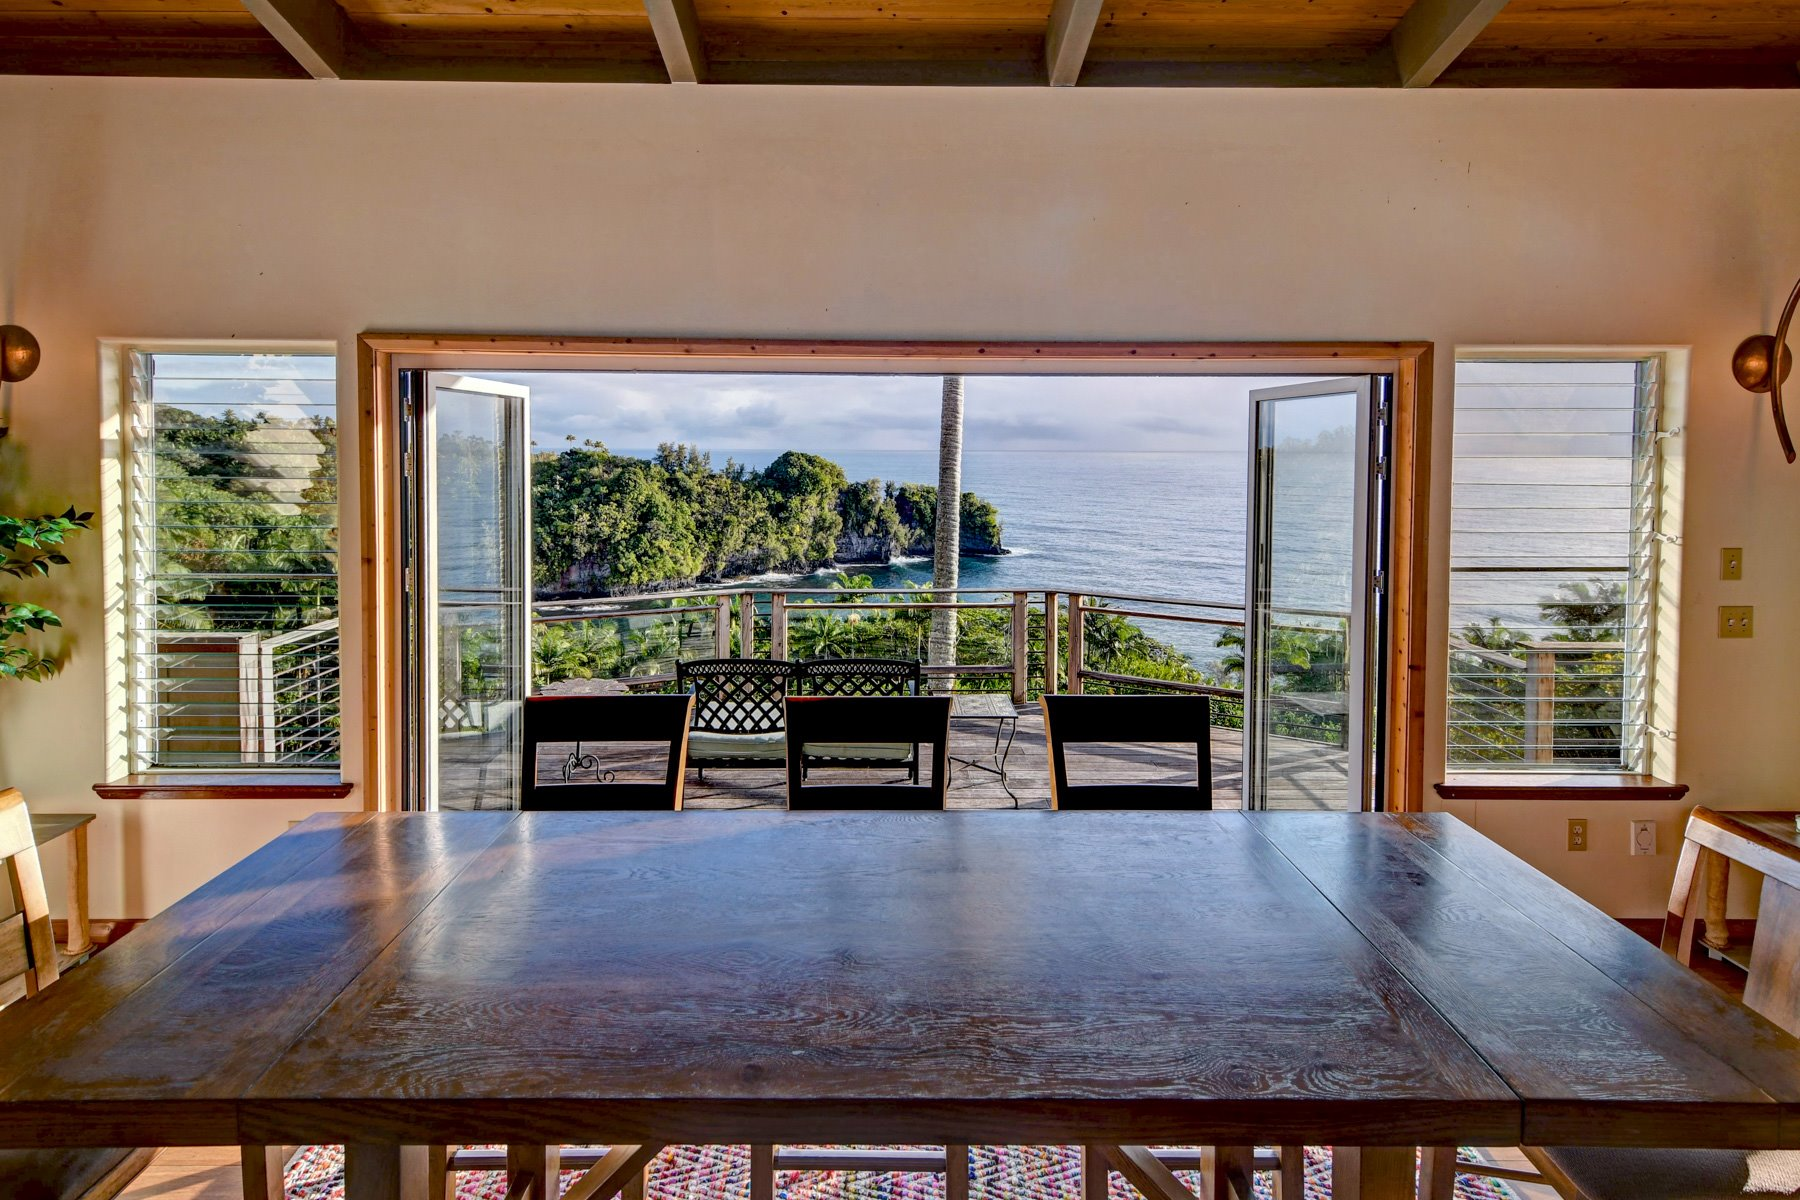 Incredible dining table views.